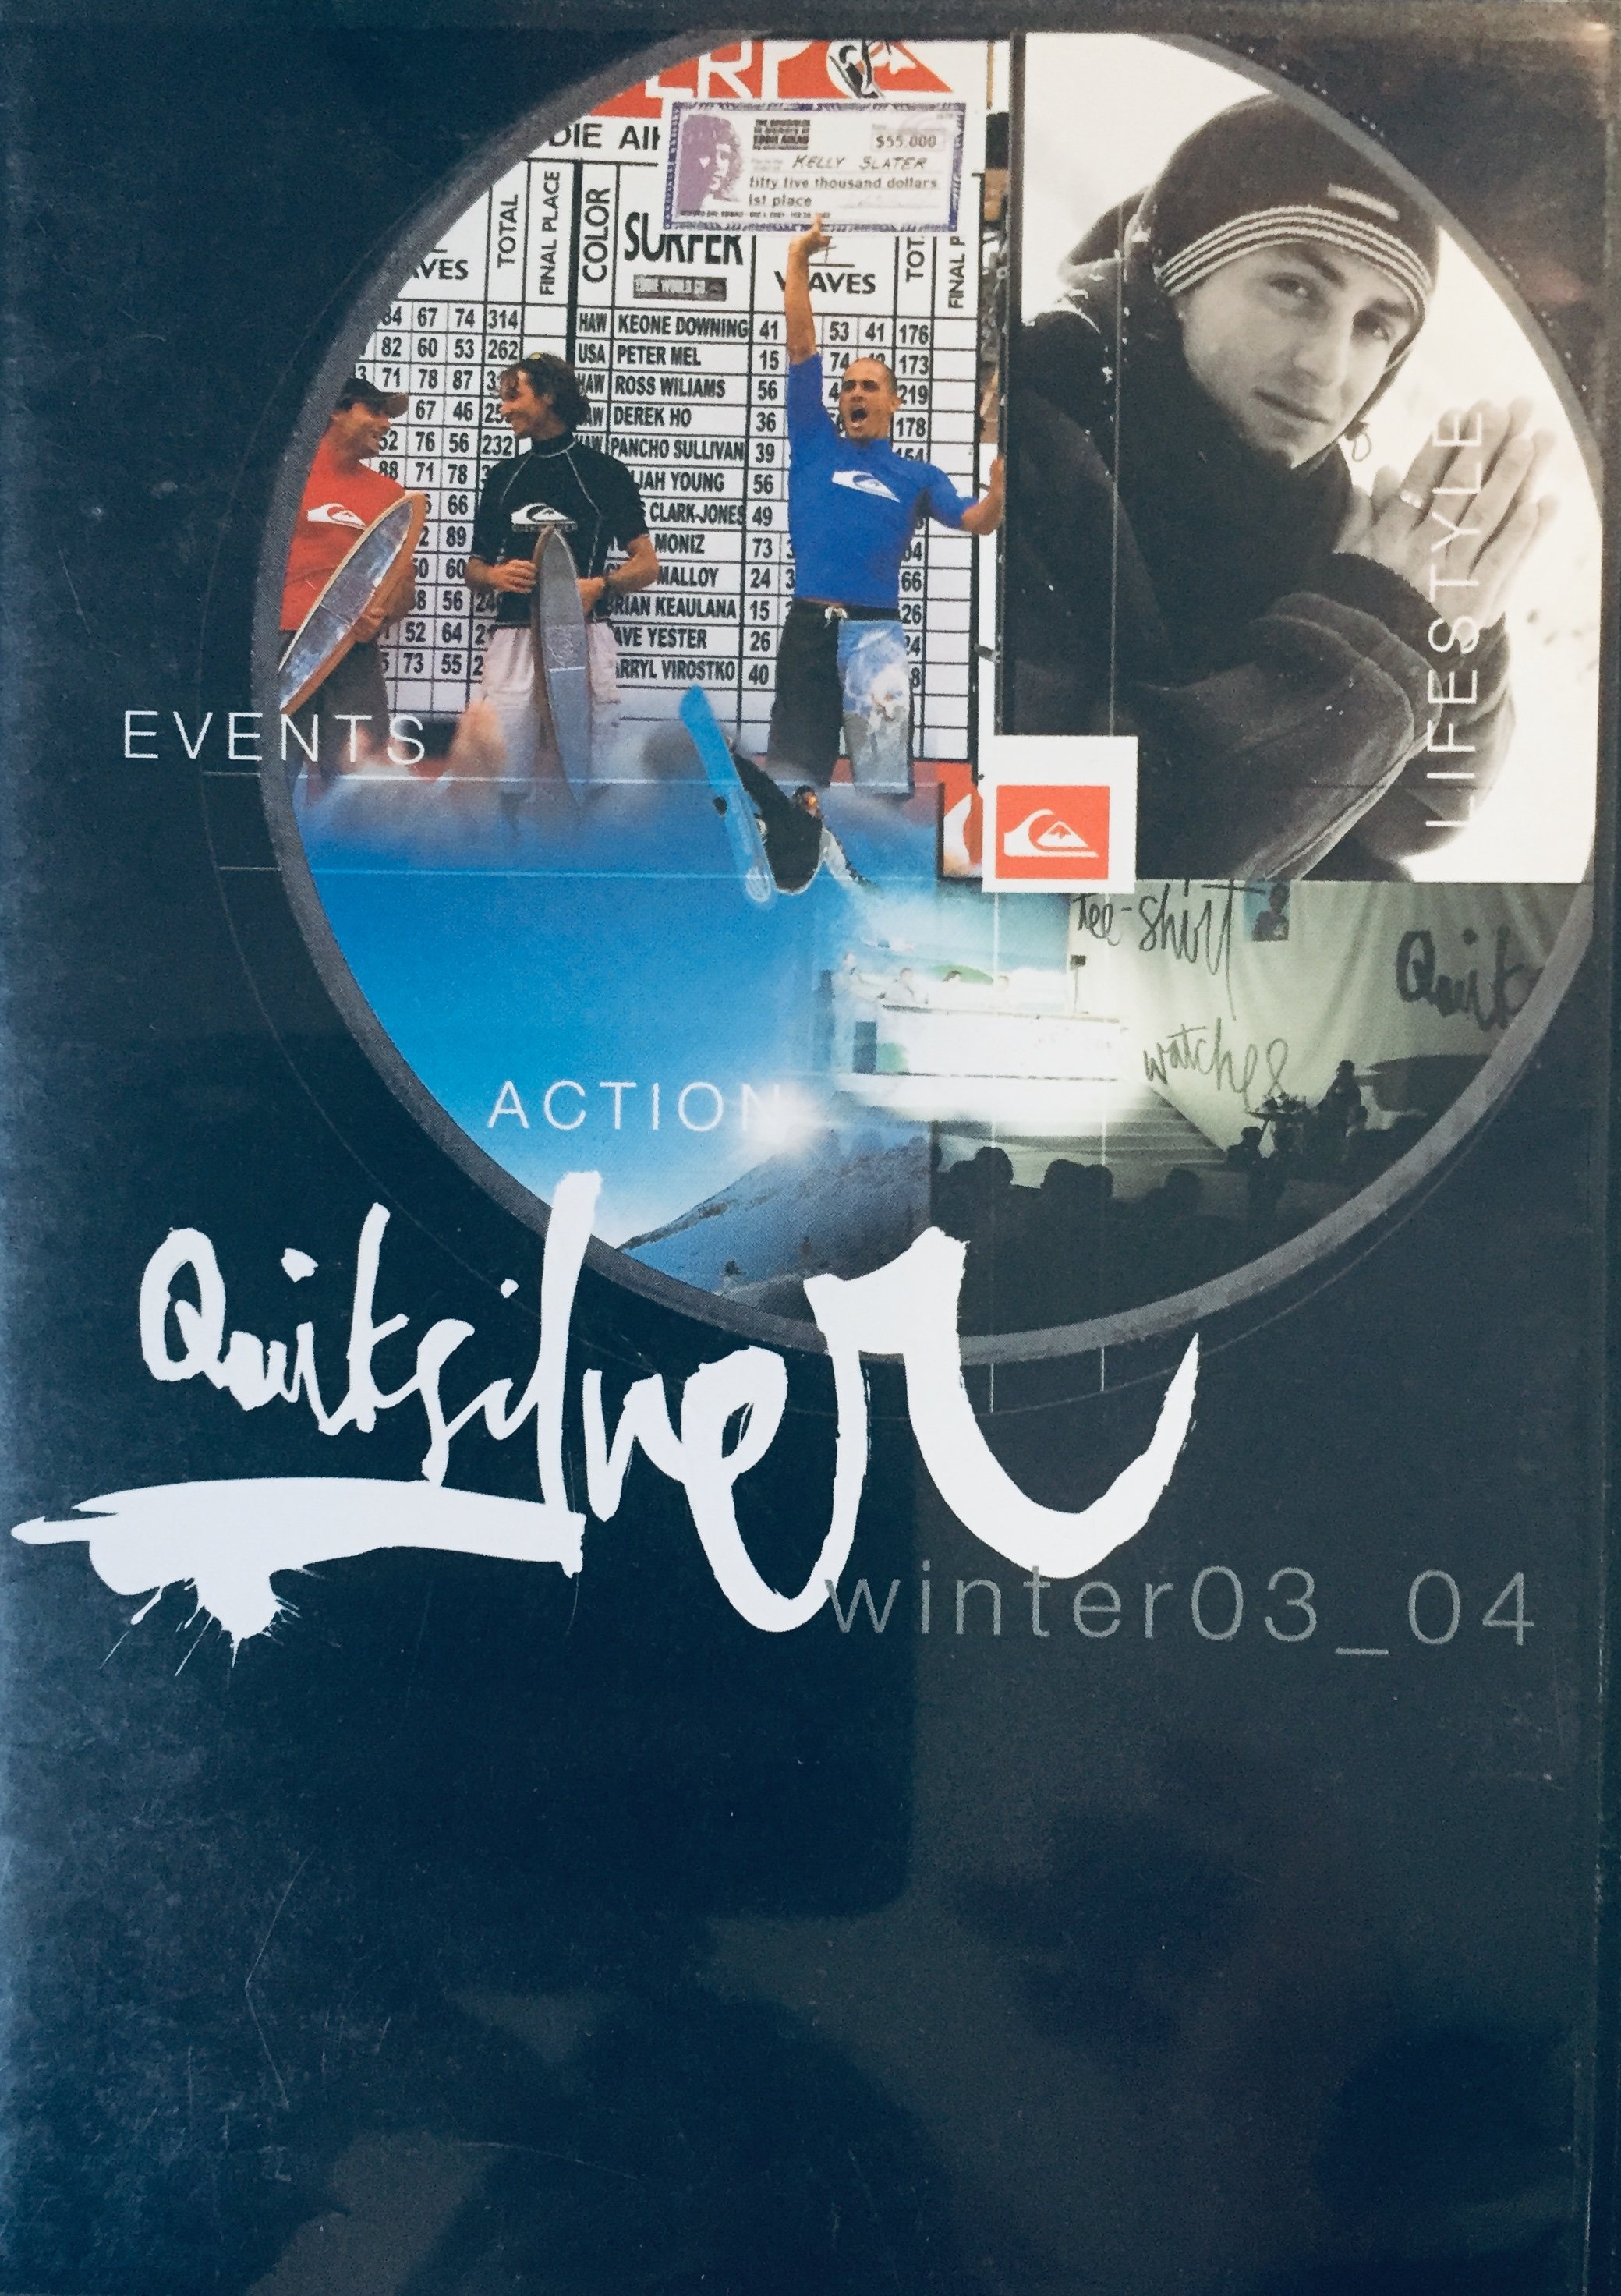 Quiksilver Winter 03_04 - DVD /plast/